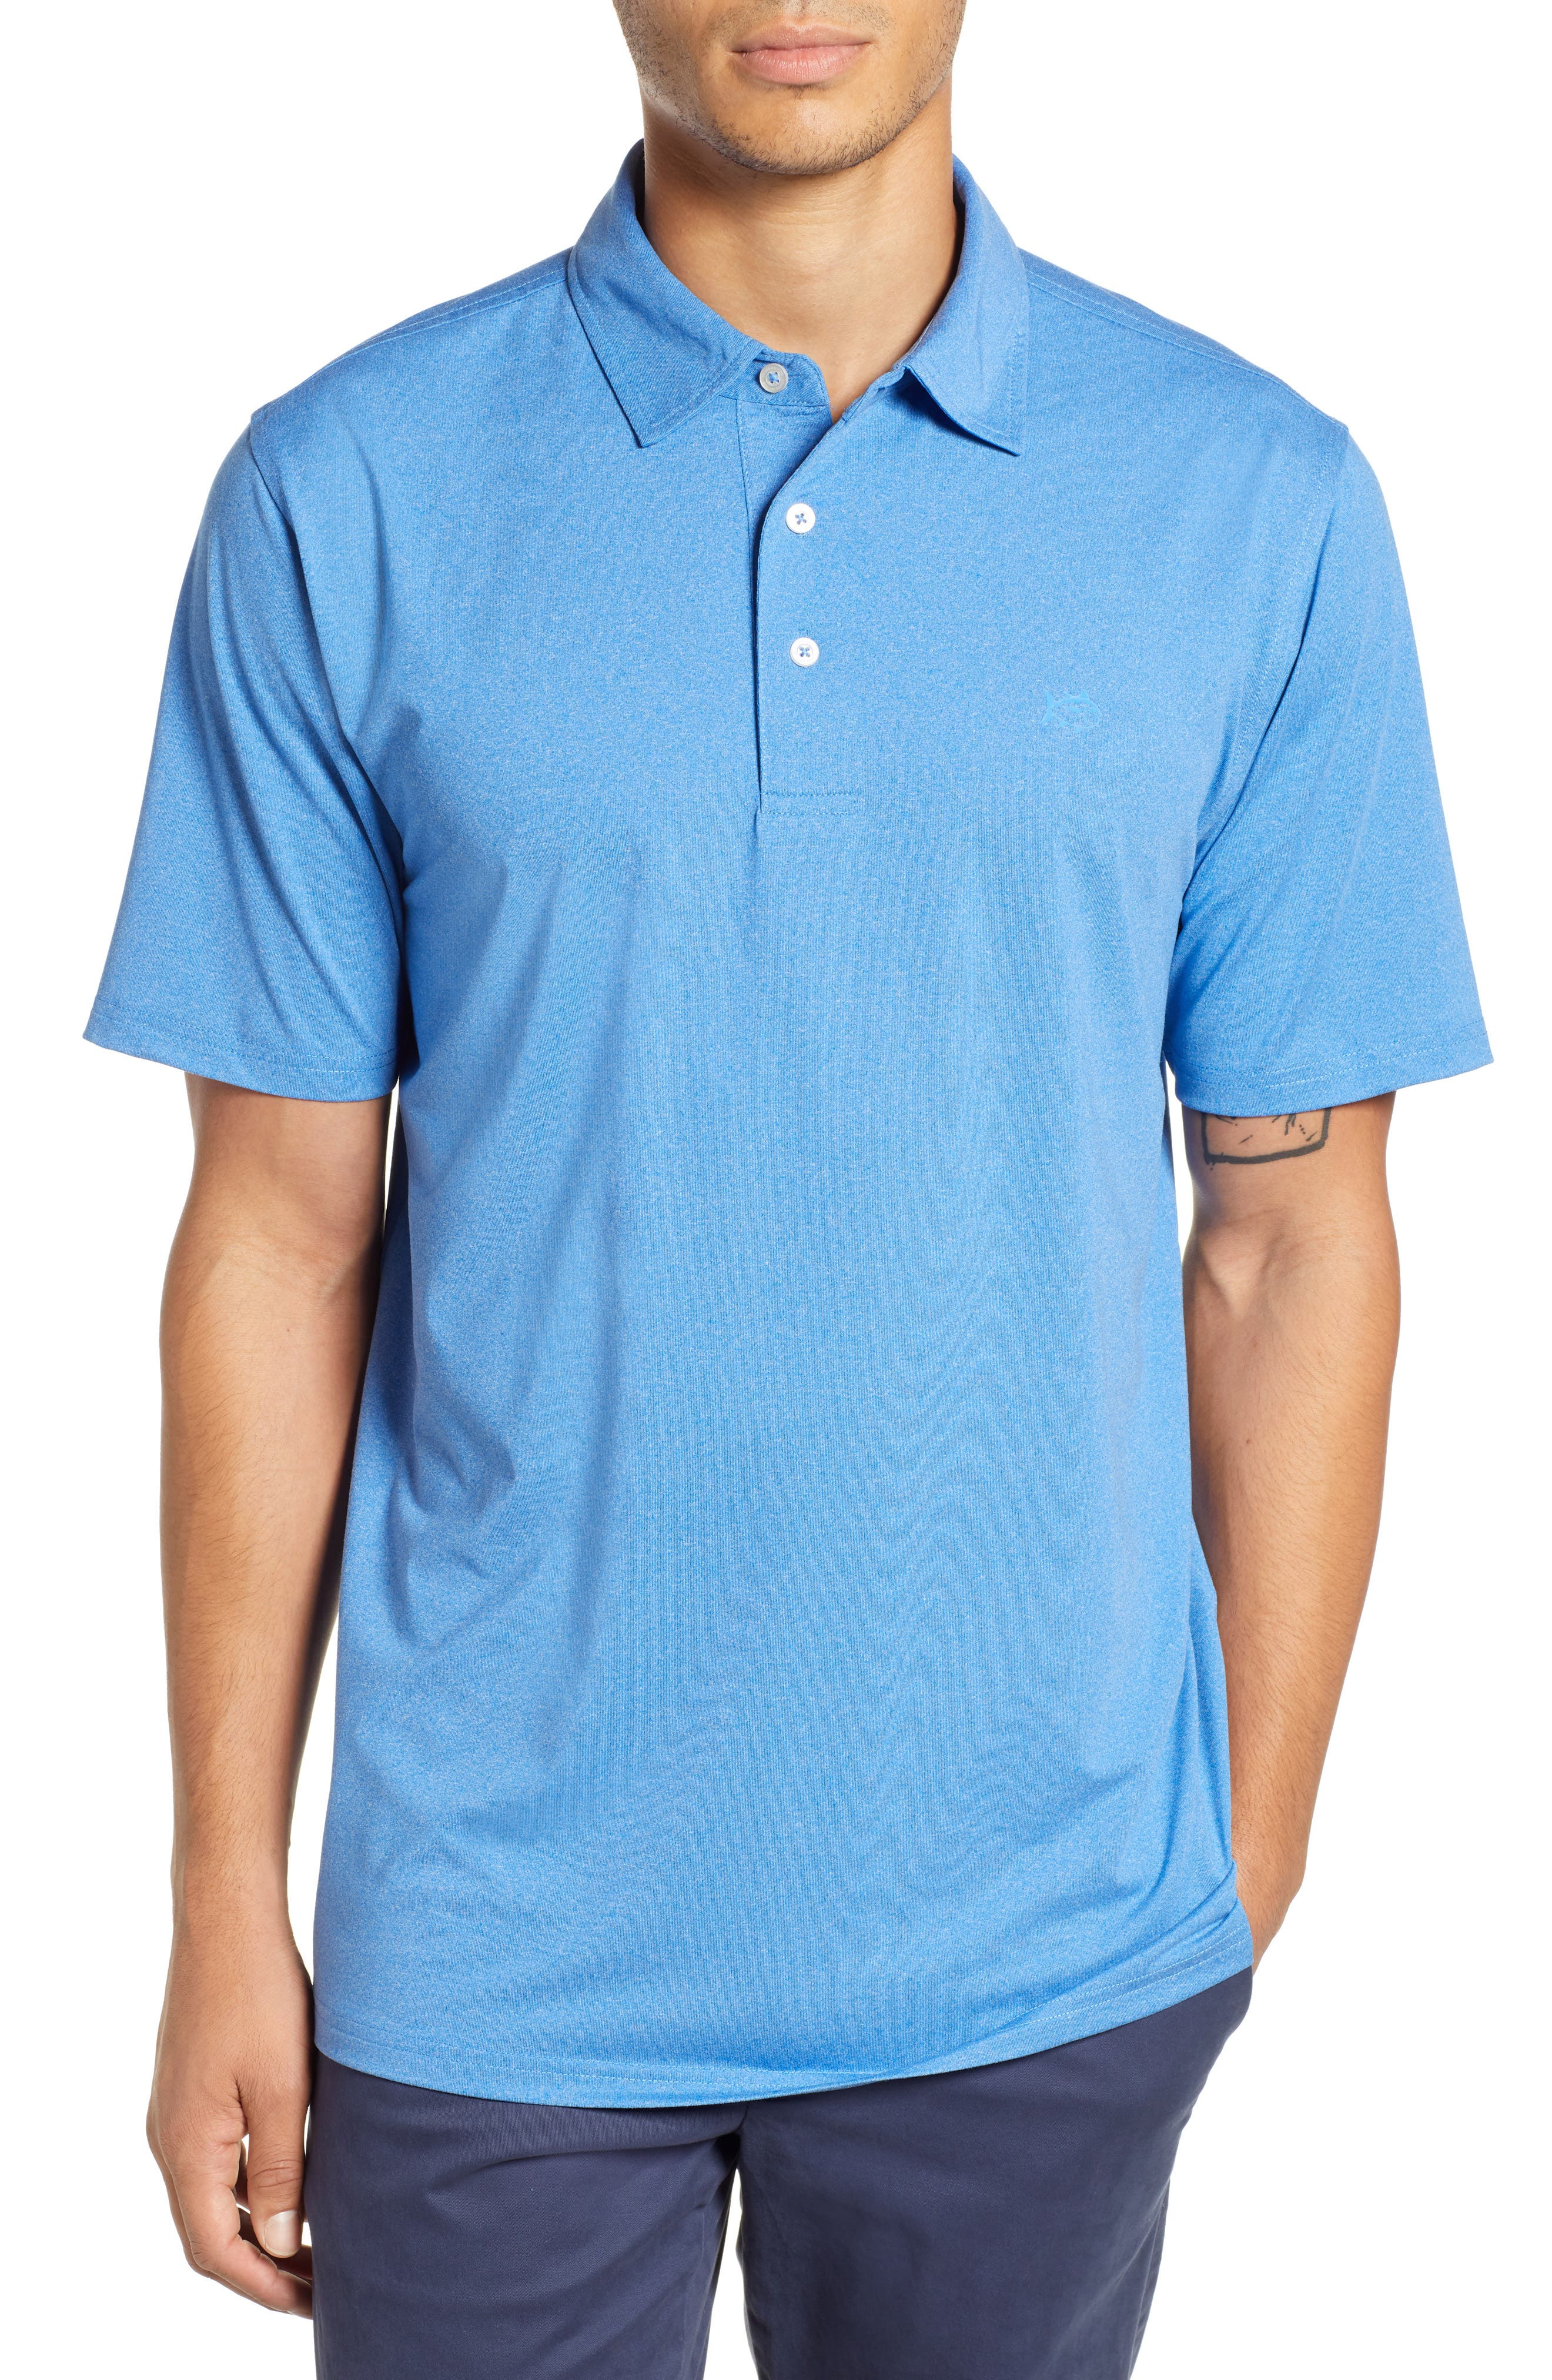 SOUTHERN TIDE Driver Performance Jersey Polo in Heather Blue